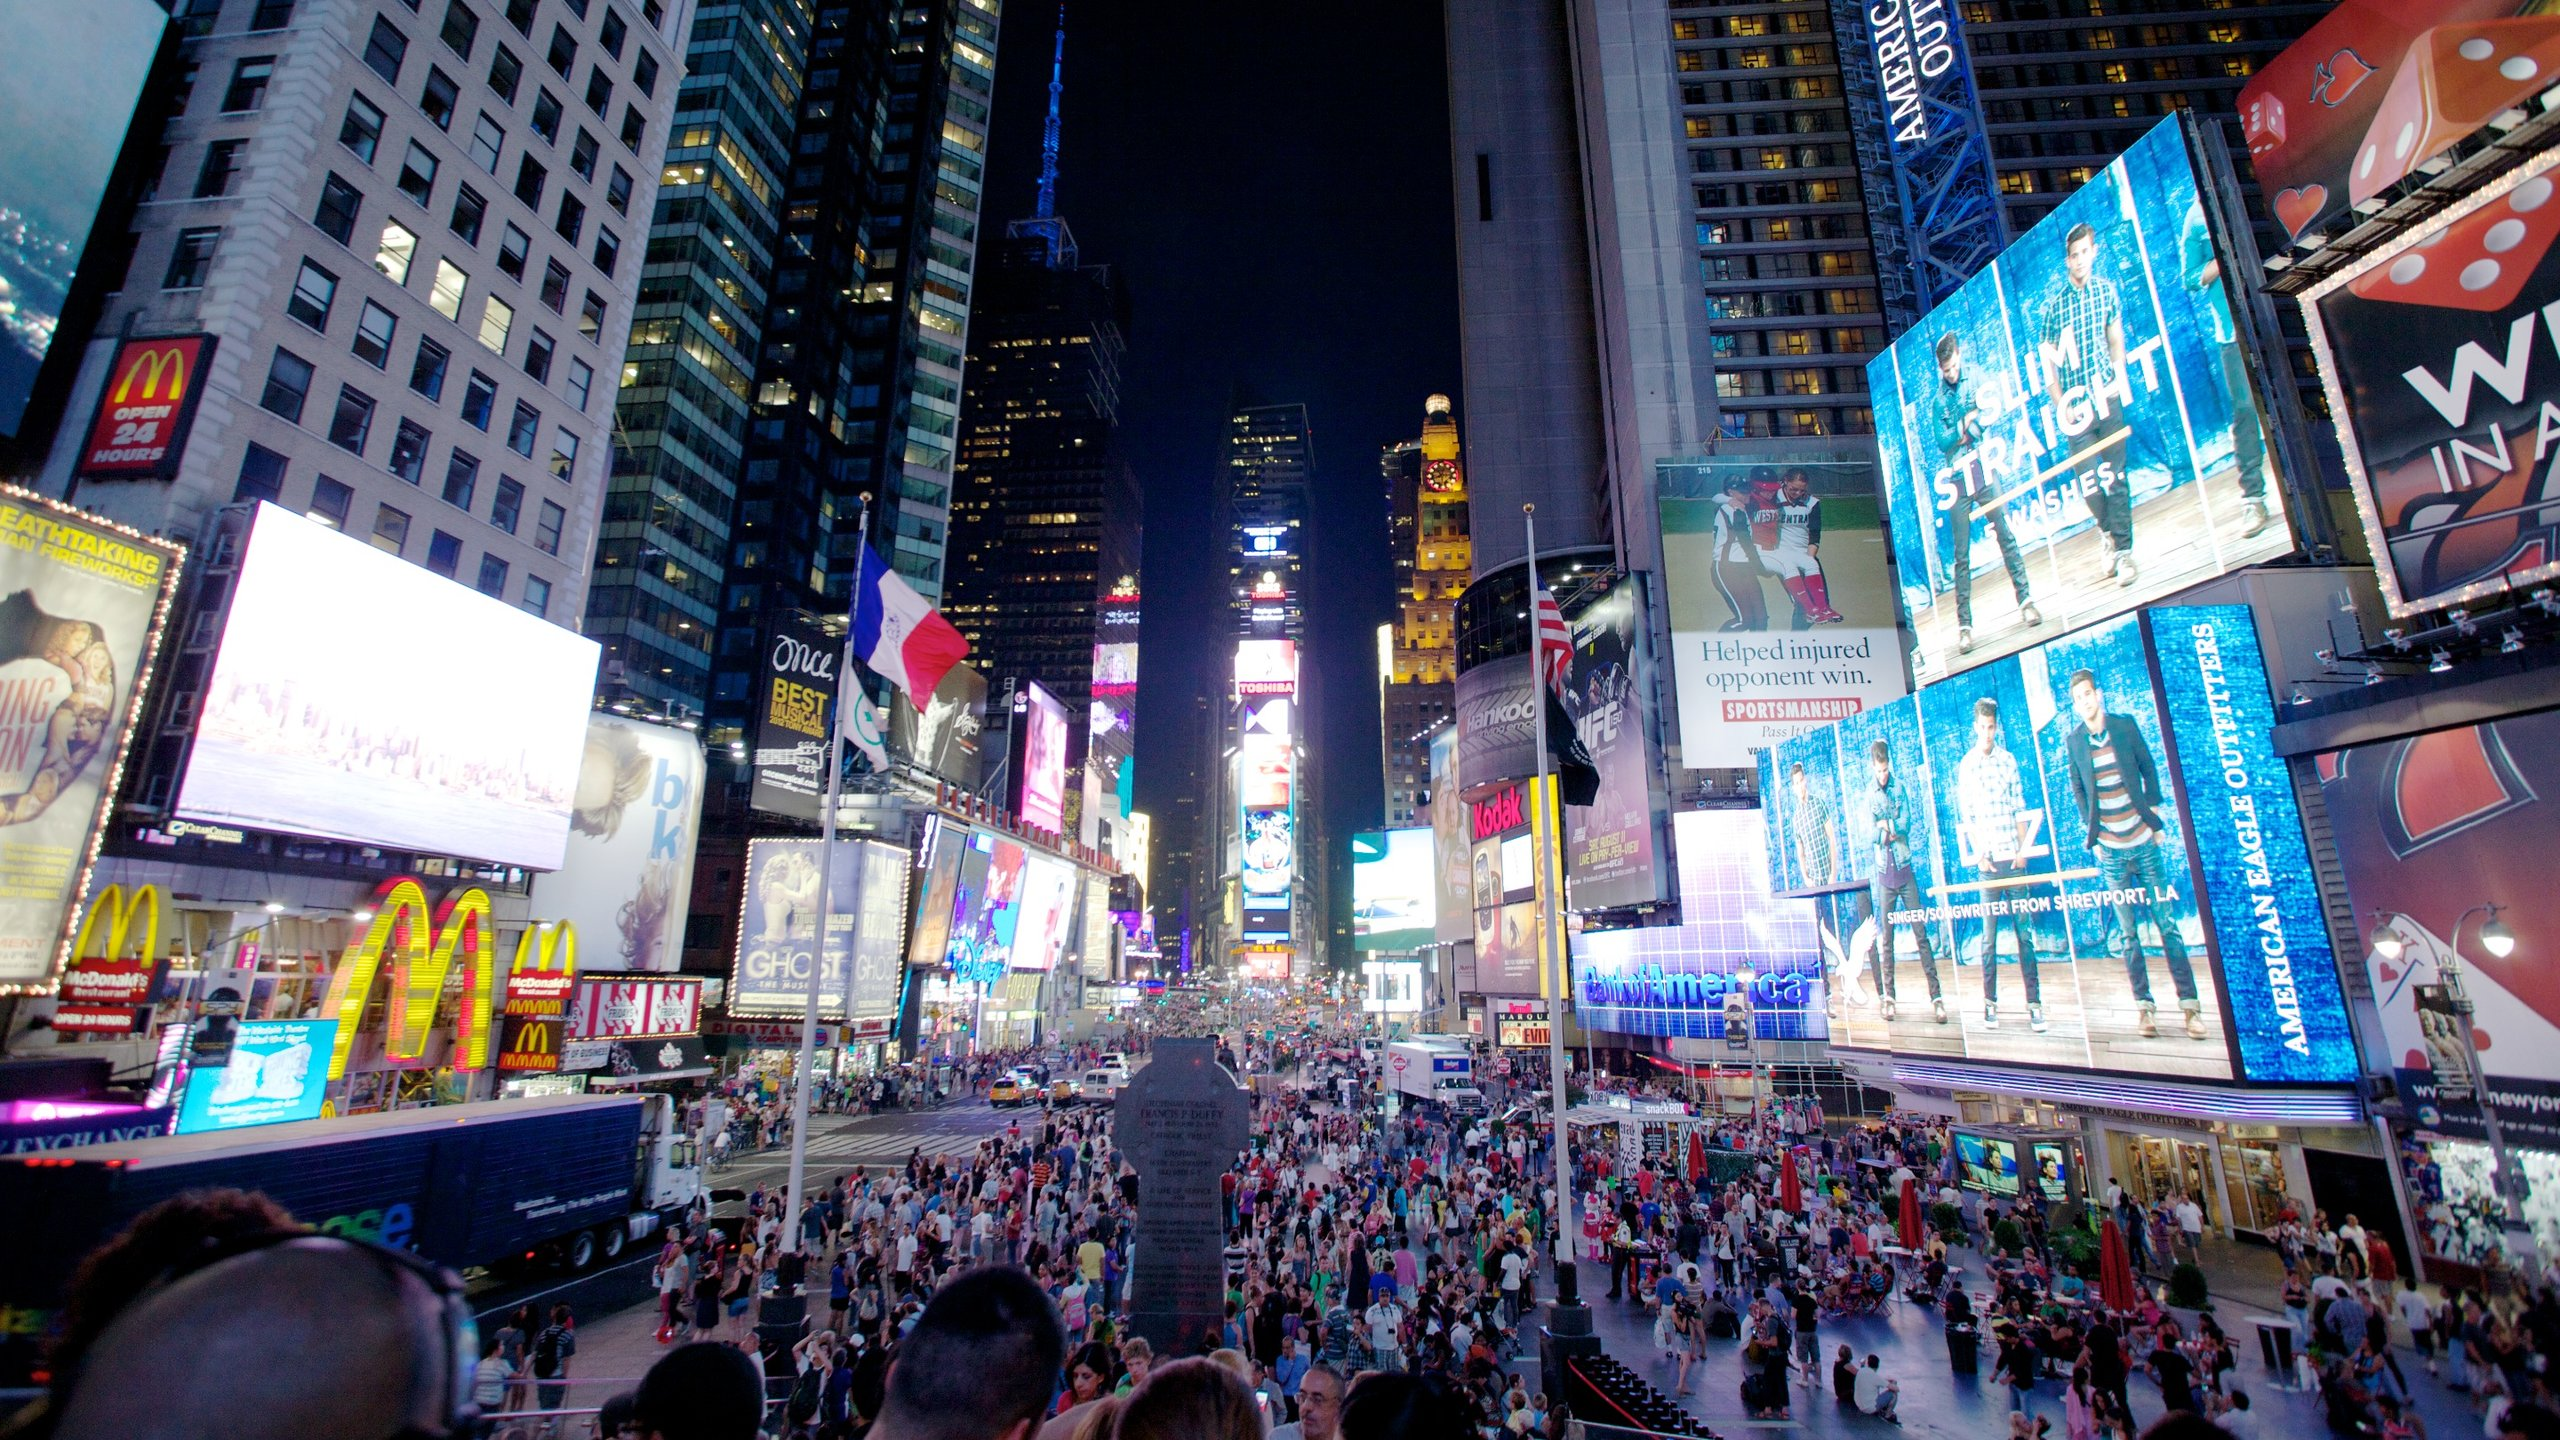 10 Best Hotels Closest To Times Square In New York For 2019